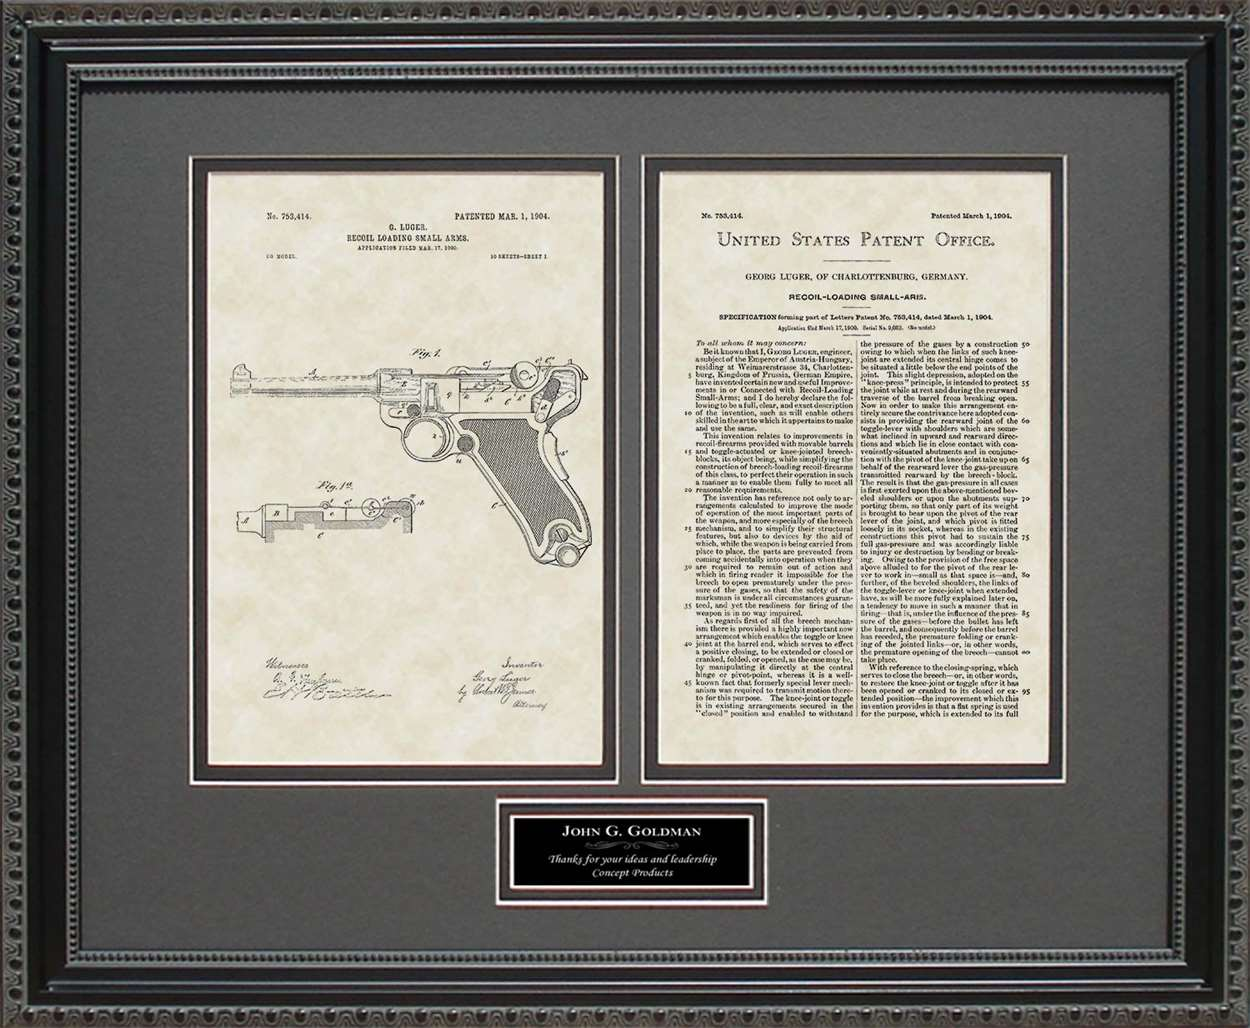 Personalized Luger Handgun Patent, Art & Copy, Luger, 1904